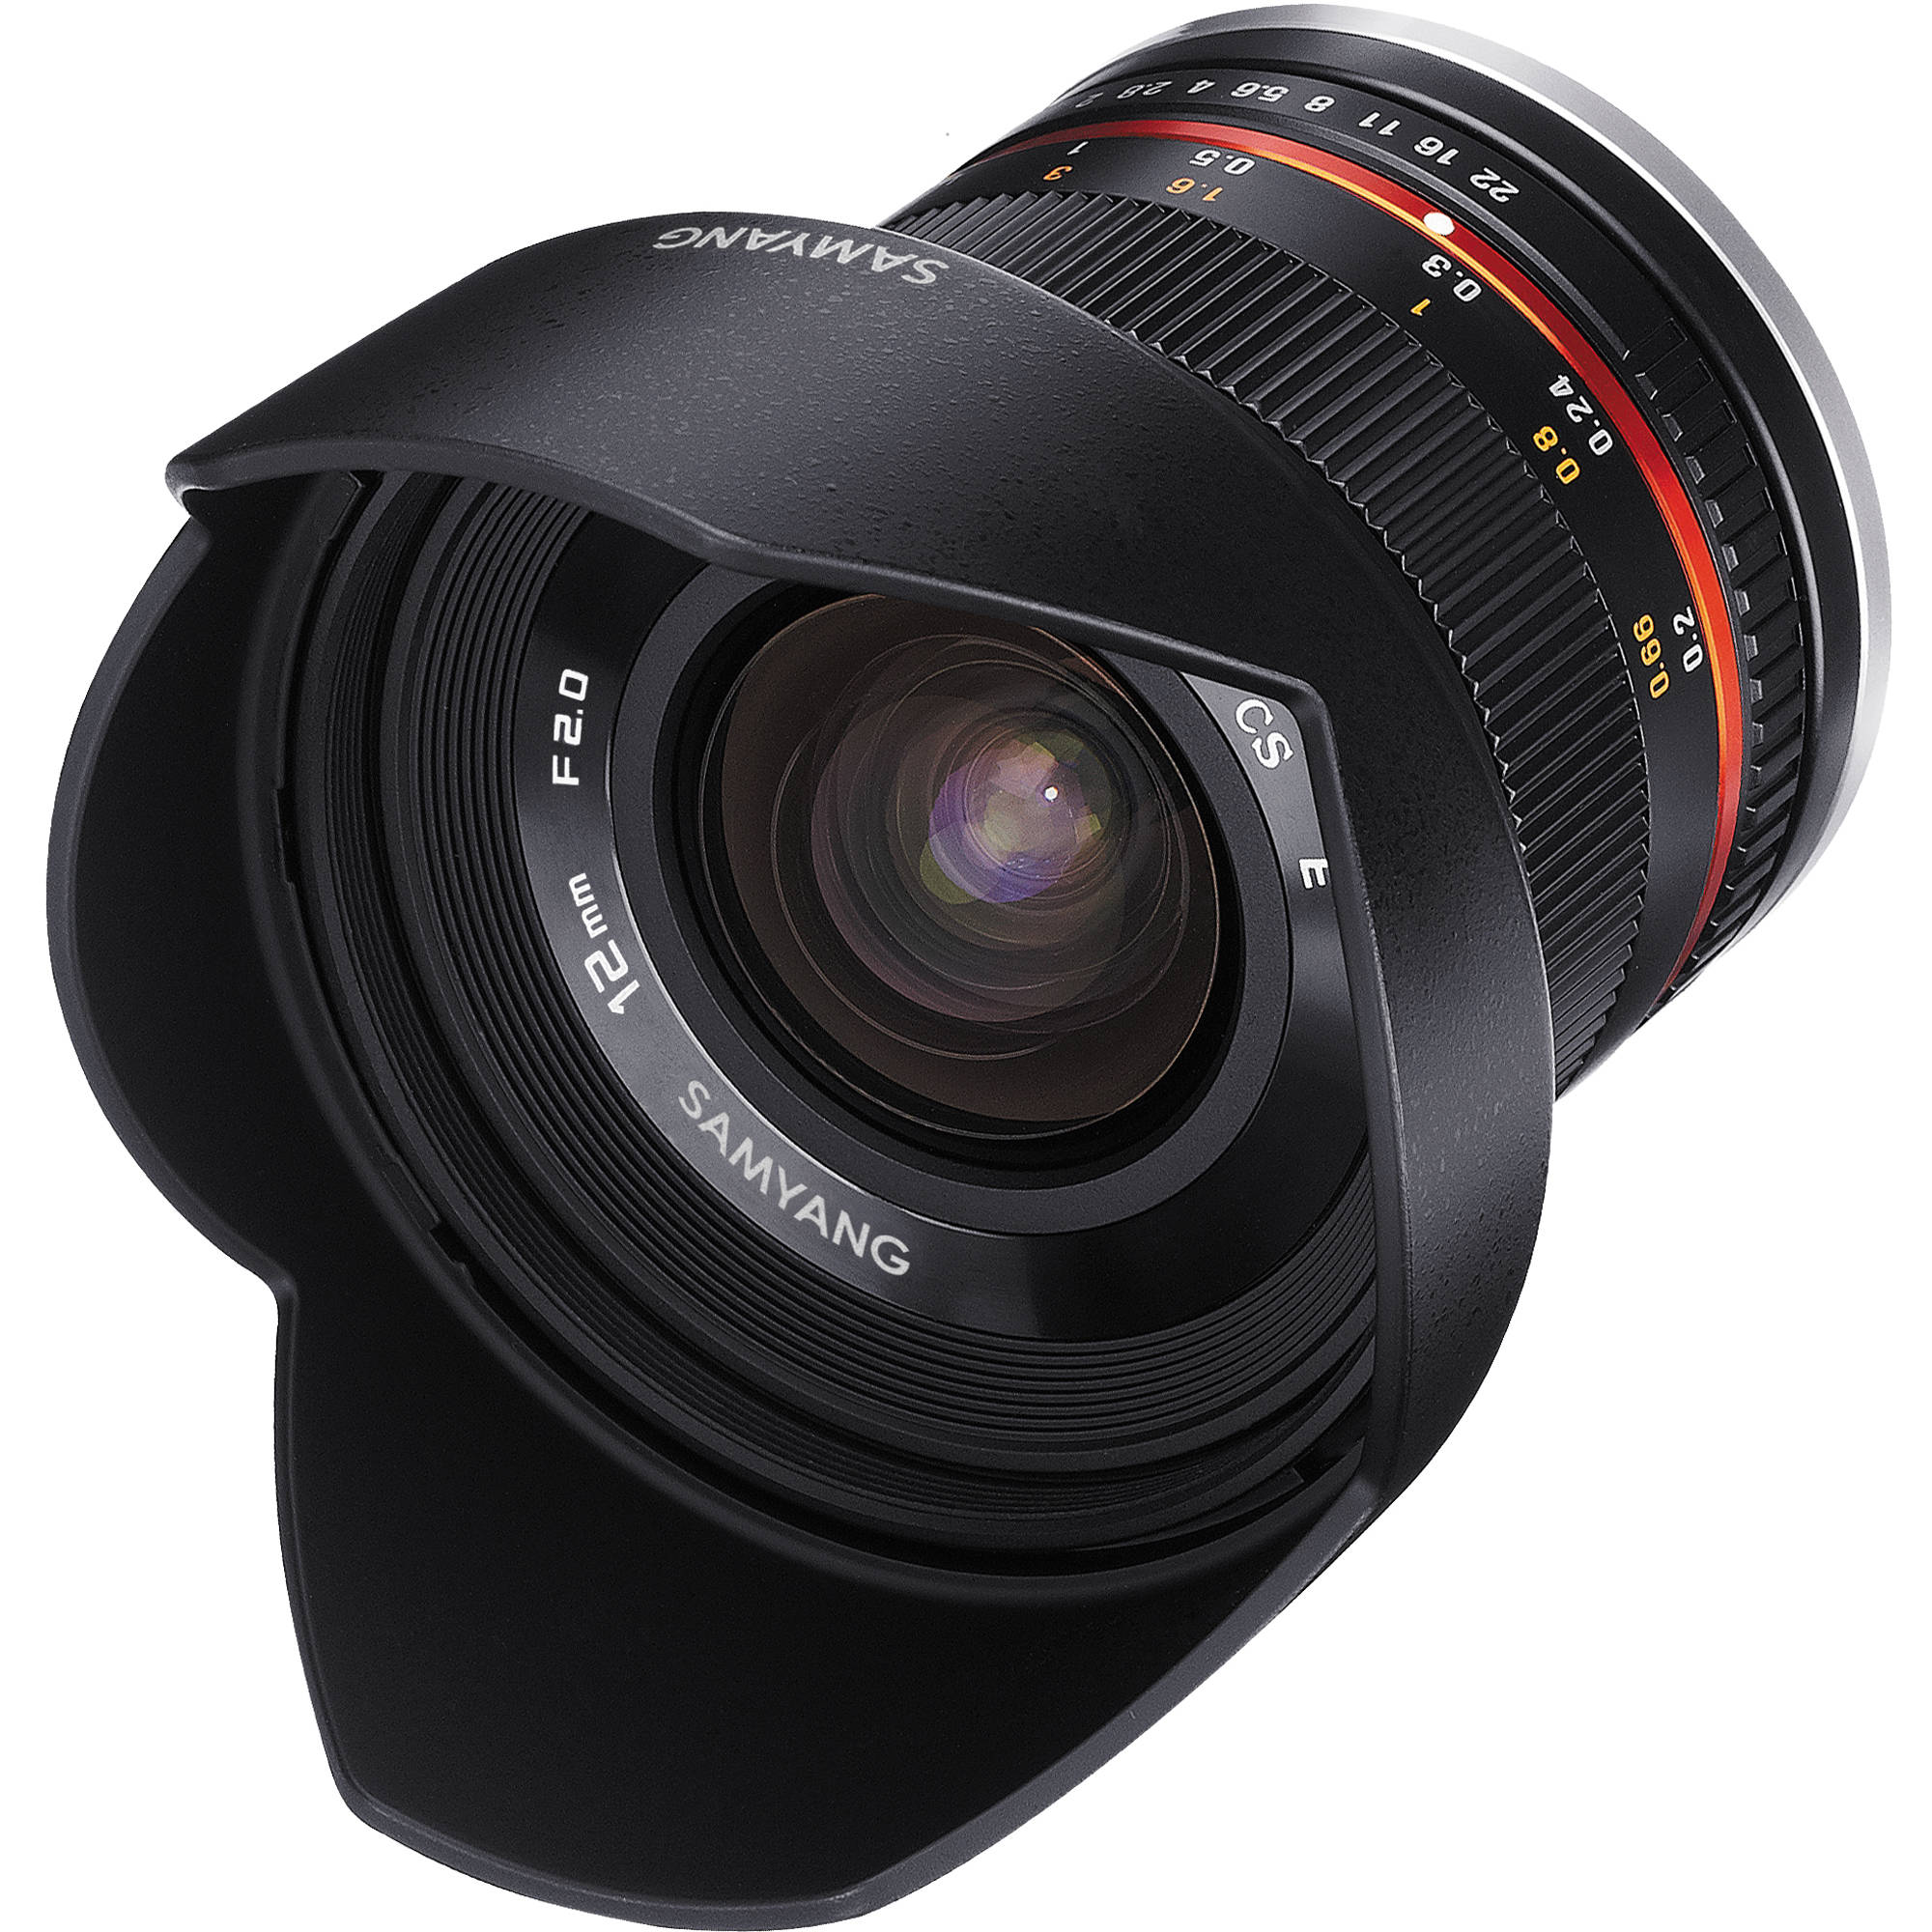 Opteka 12mm f//2.8 HD MC Manual Focus Wide Angle Lens for Sony E Mount APS-C Format Digital Cameras